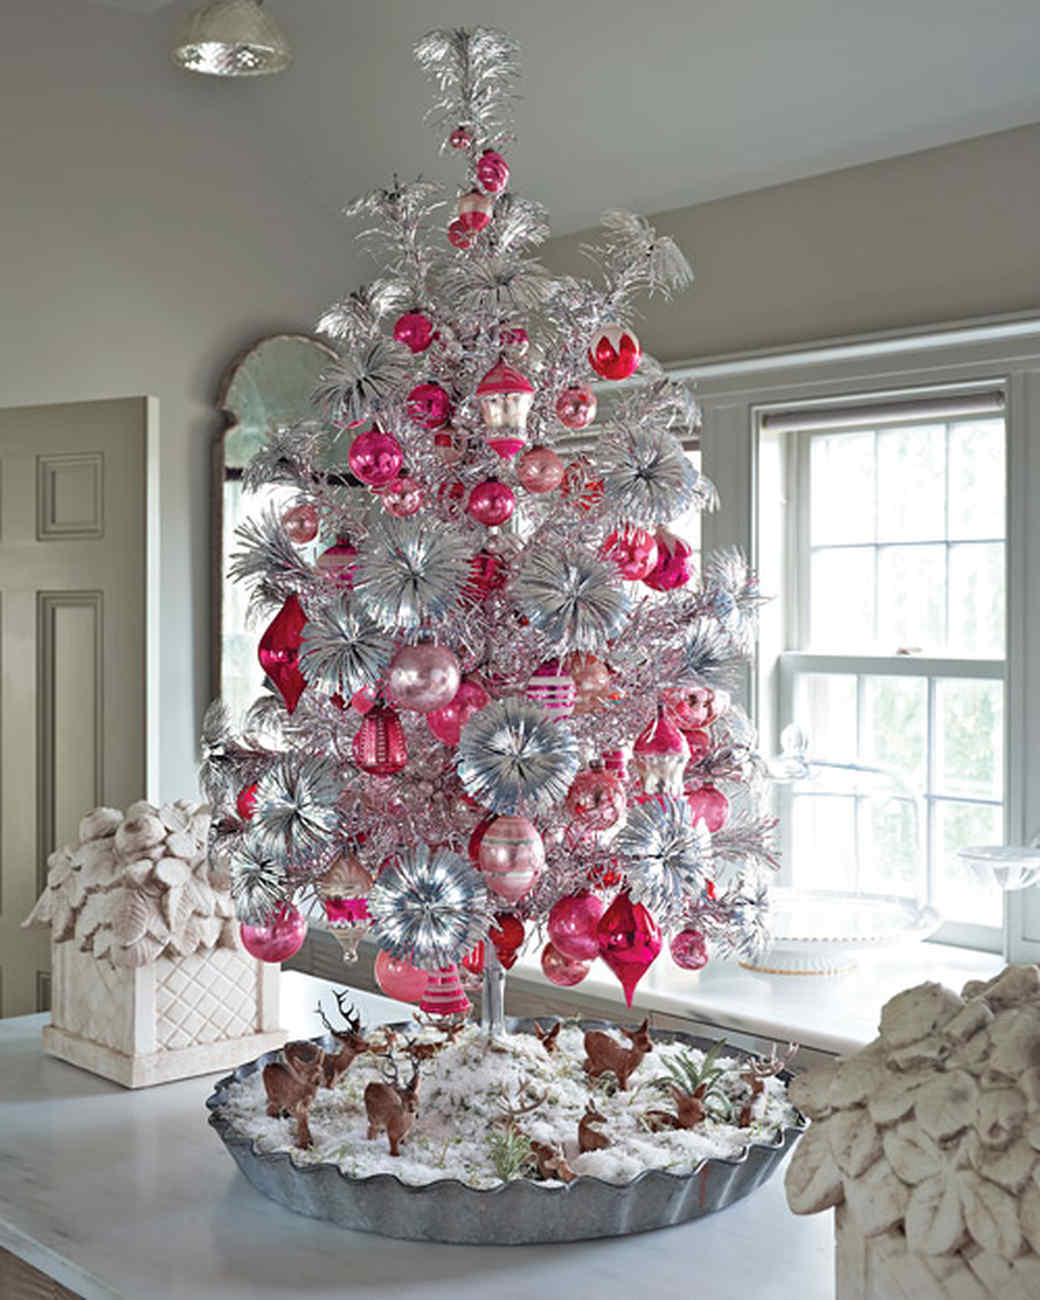 28 creative christmas tree decorating ideas martha stewart - Silver Christmas Tree Decorations